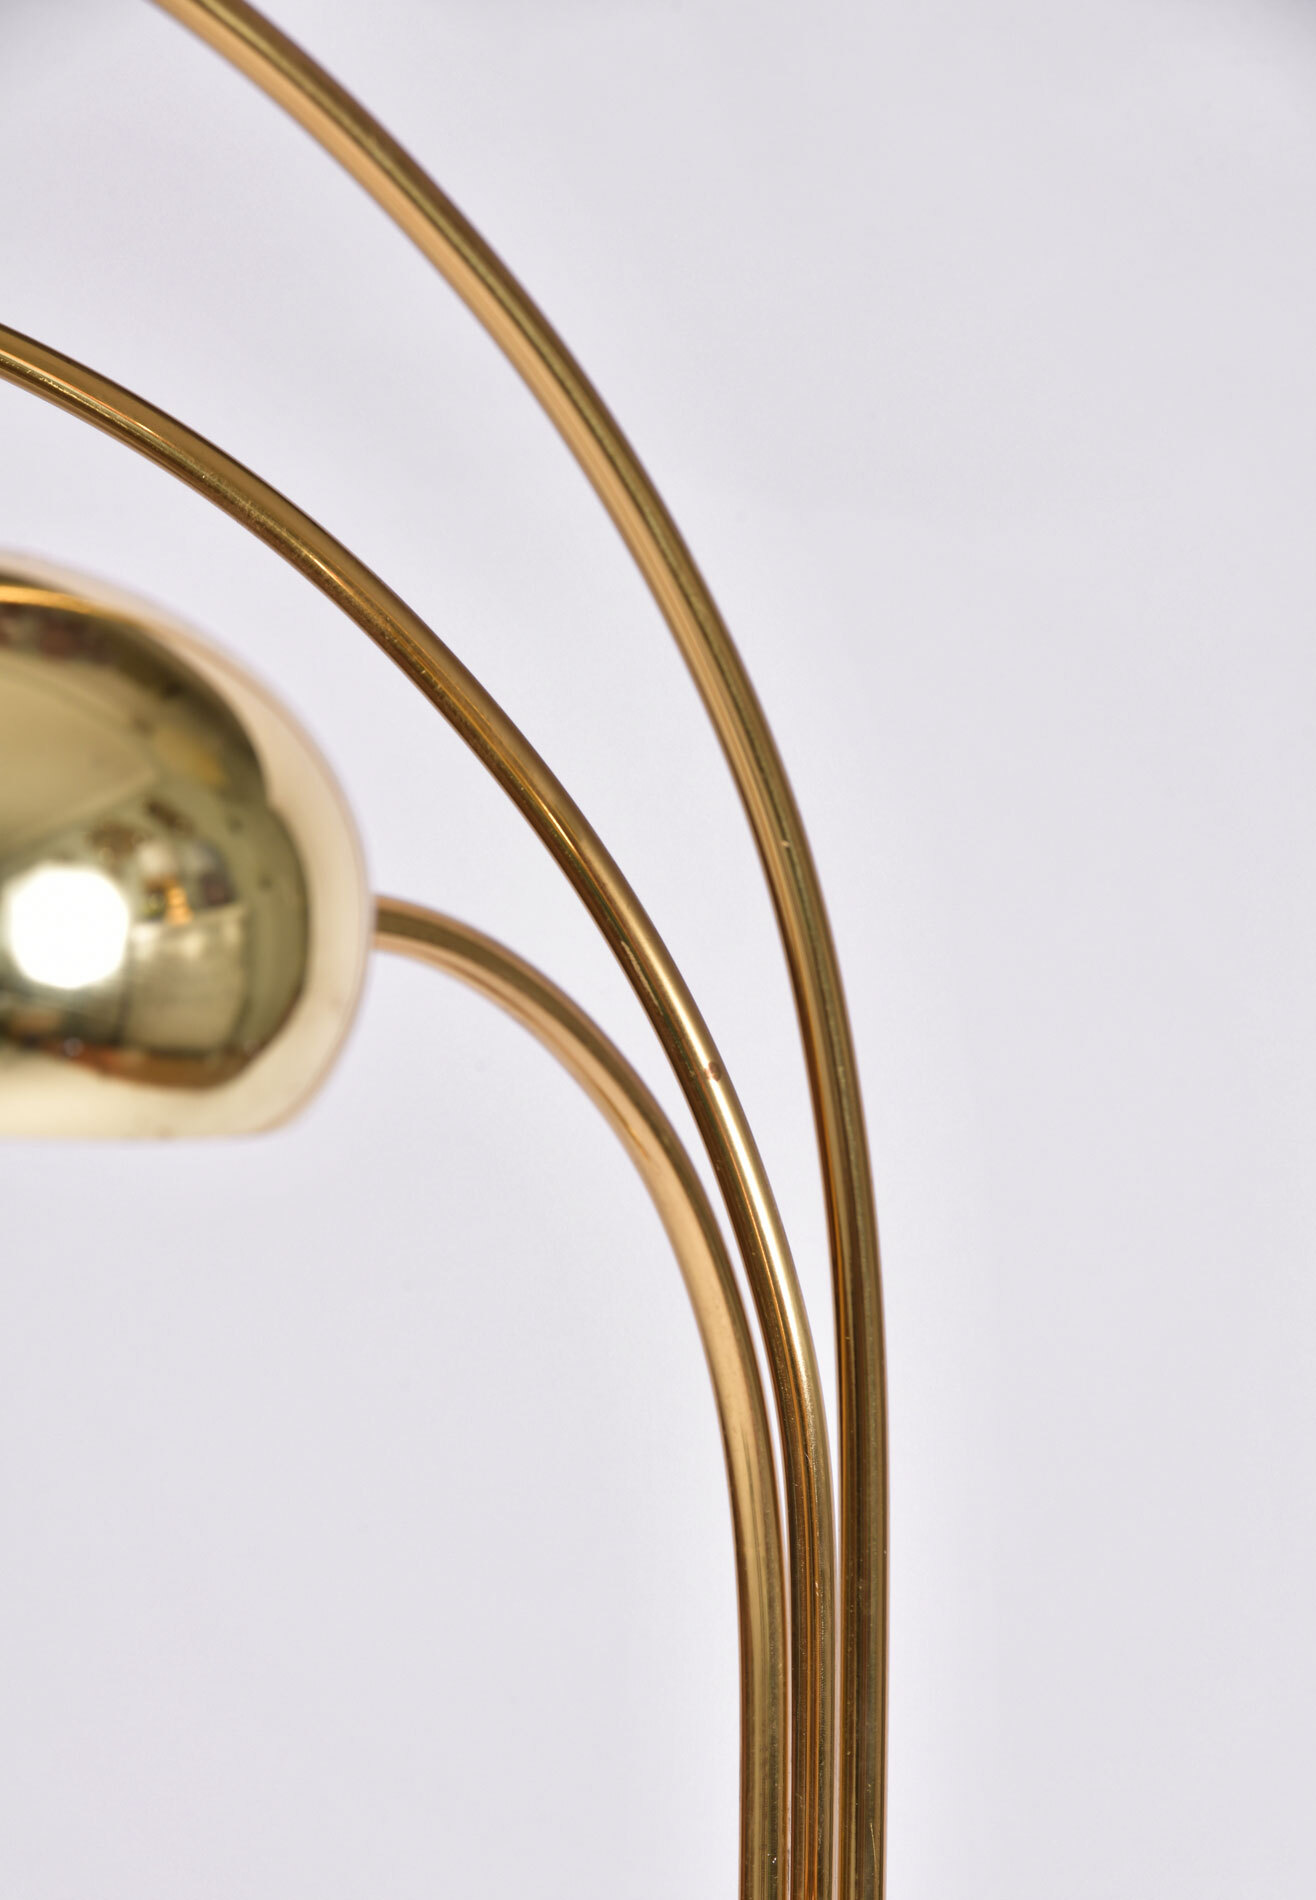 The image for Us 1970S Brass Floor Lamp 04